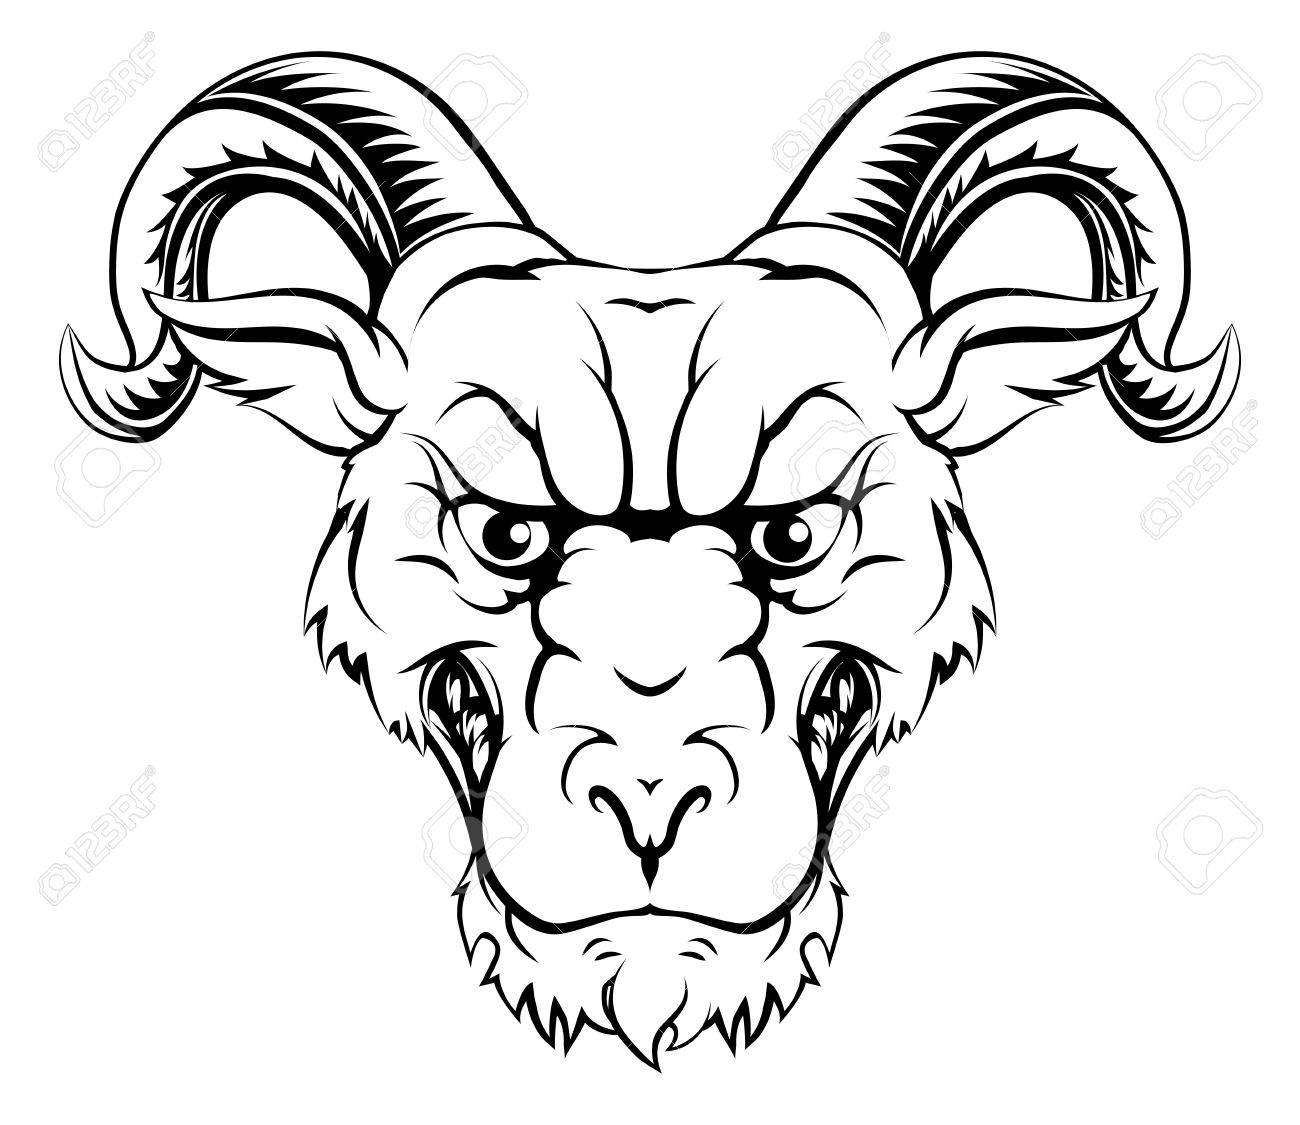 1300x1125 Ram Character Illustration Of A Ram Sports Mascot Or Animal